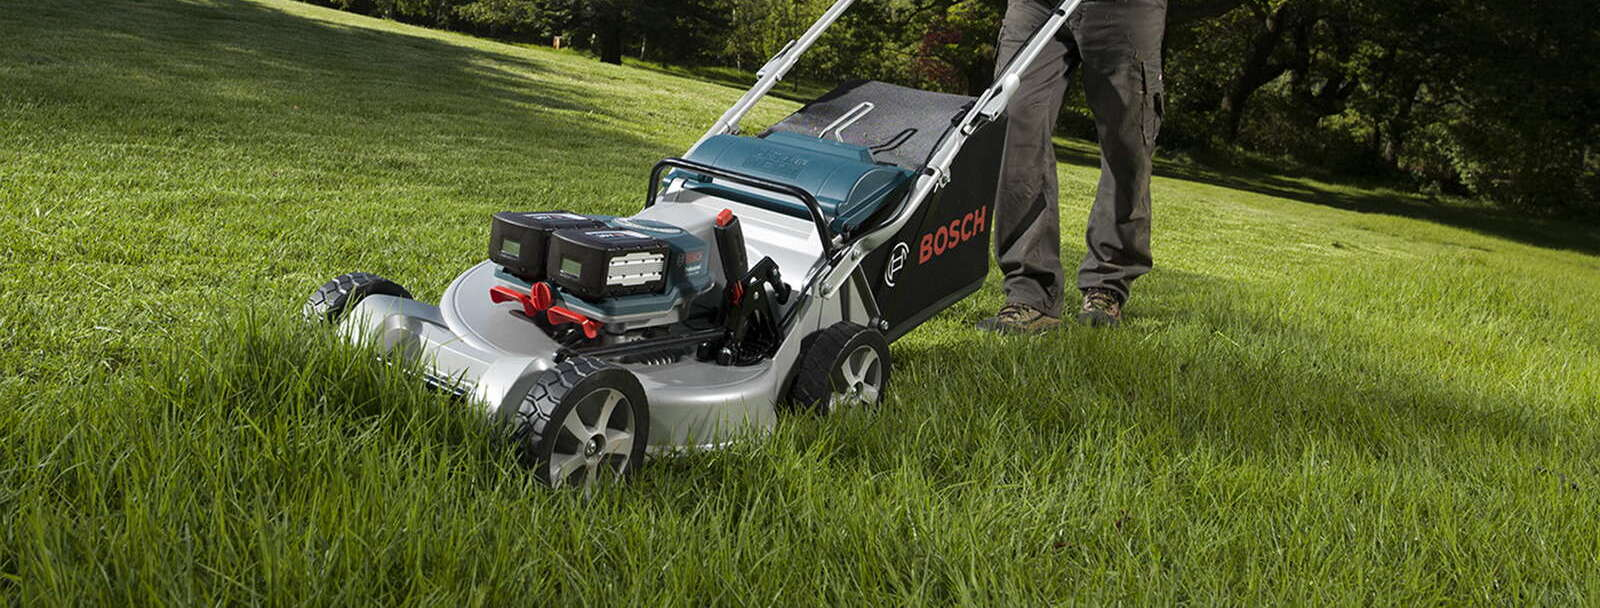 Best Battery Powered Lawn Mowers in 2020 - Comparison tool & Buying Guide